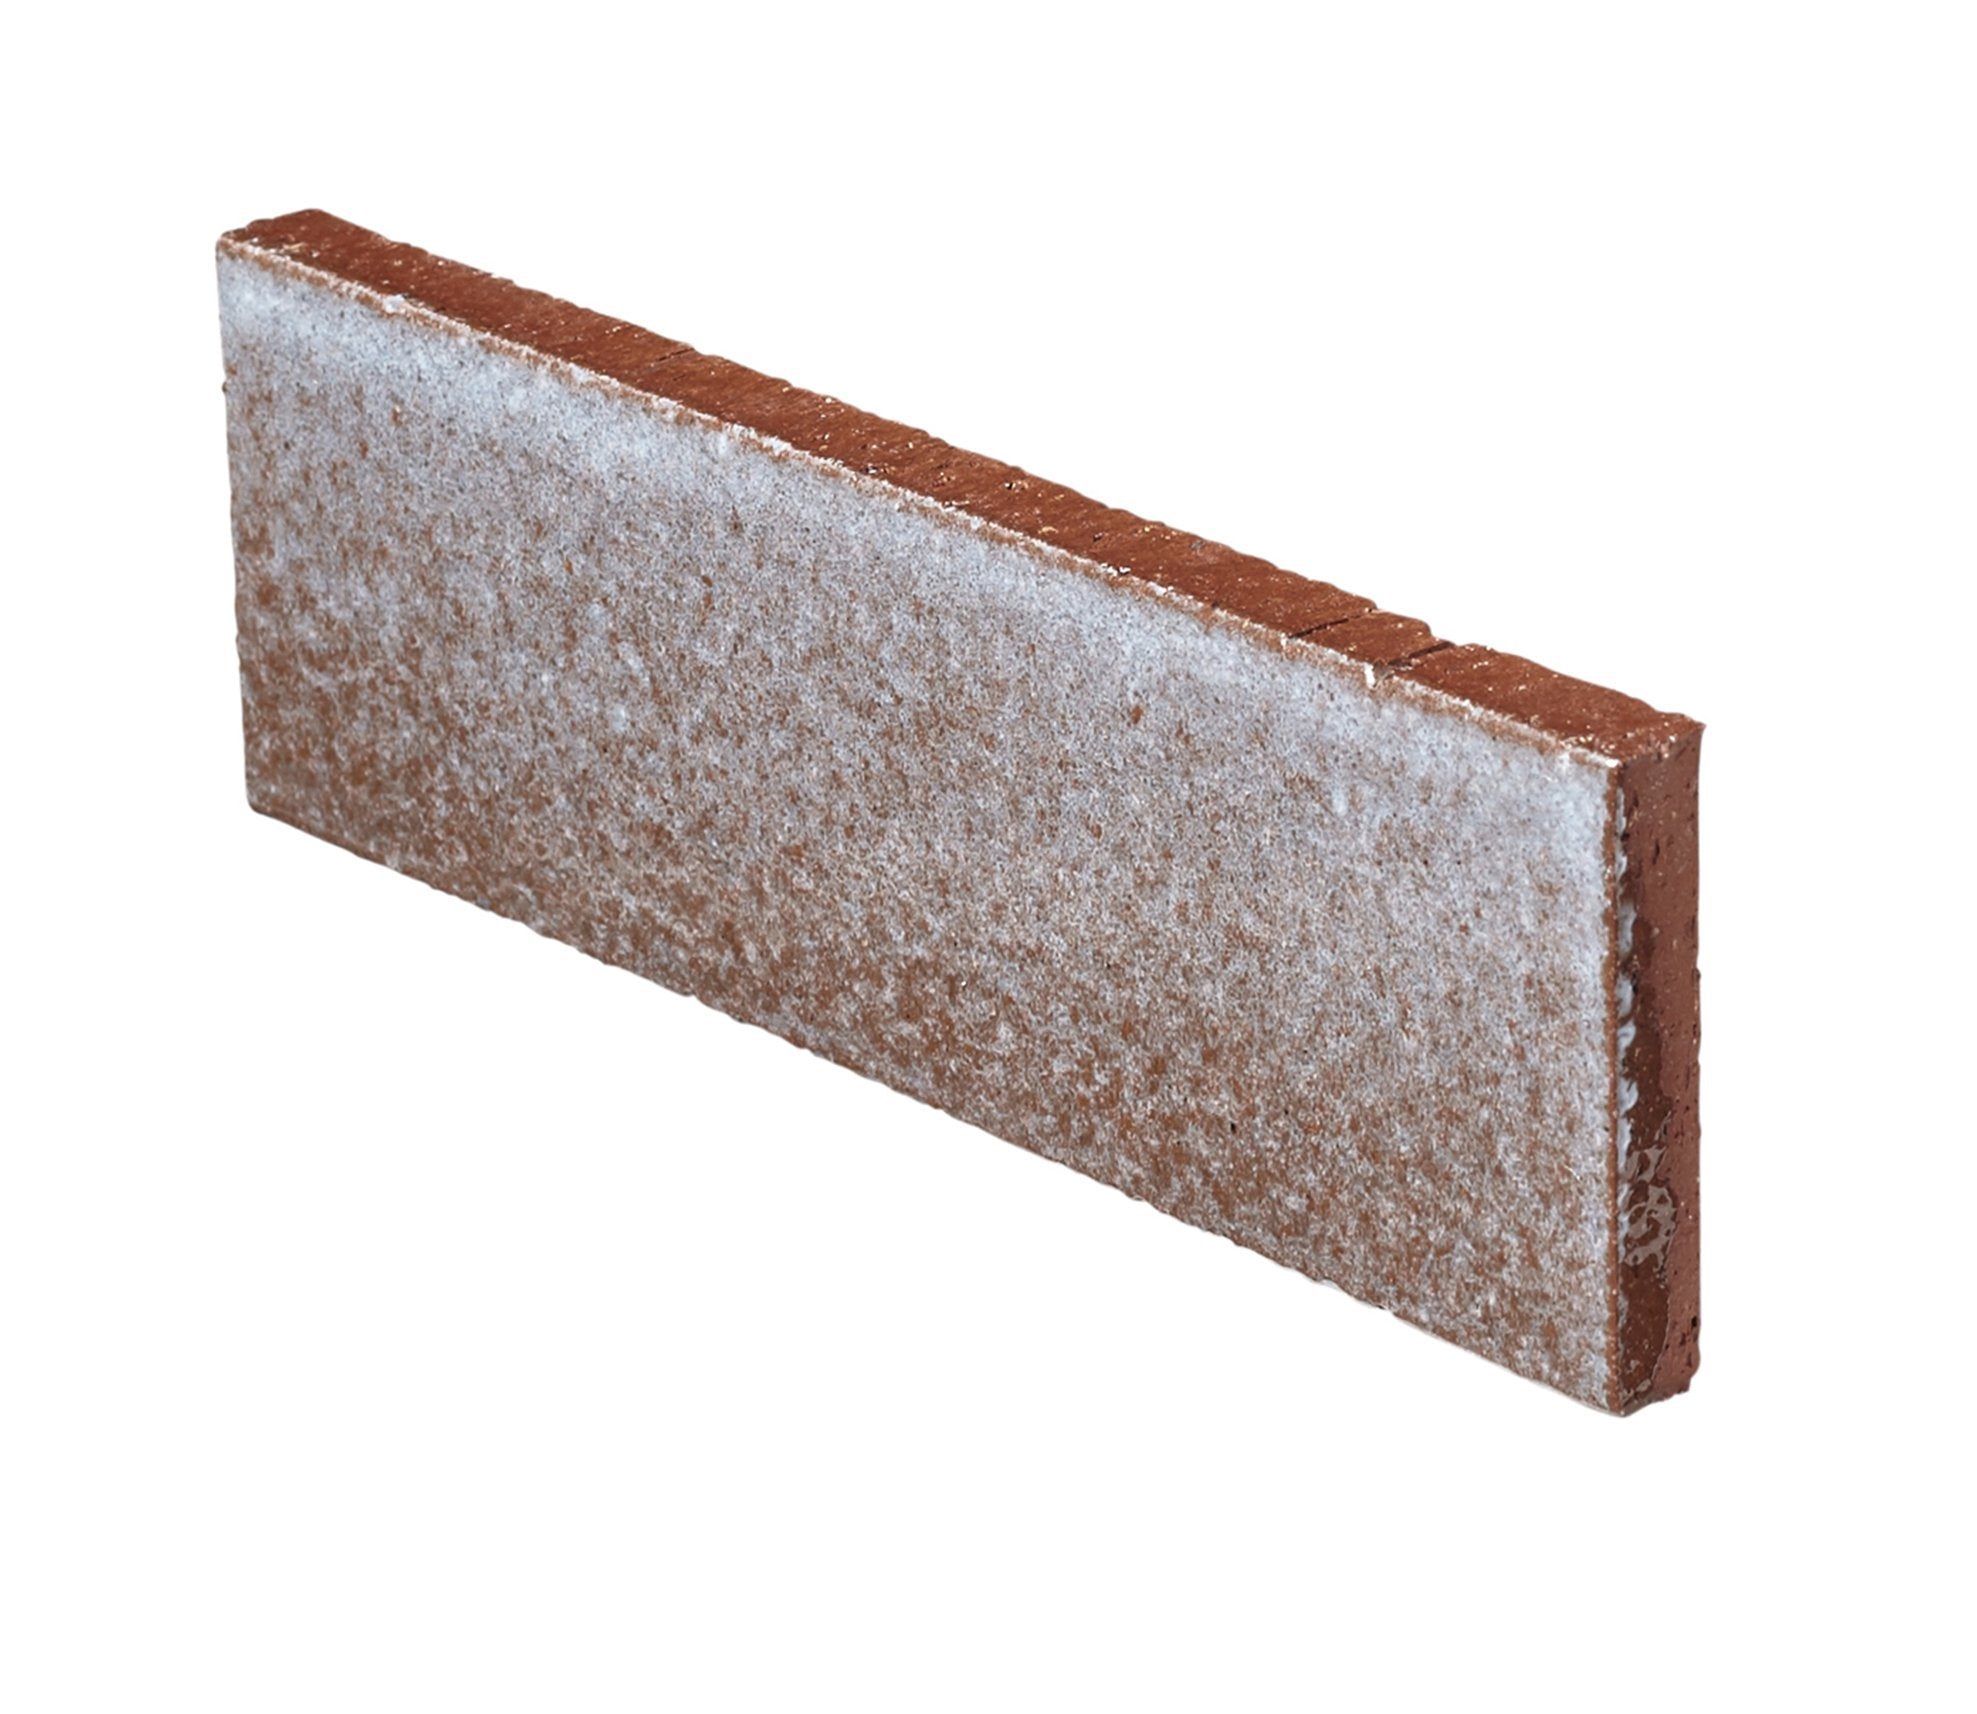 Terra Firma Glazed Bricks Product Image 19